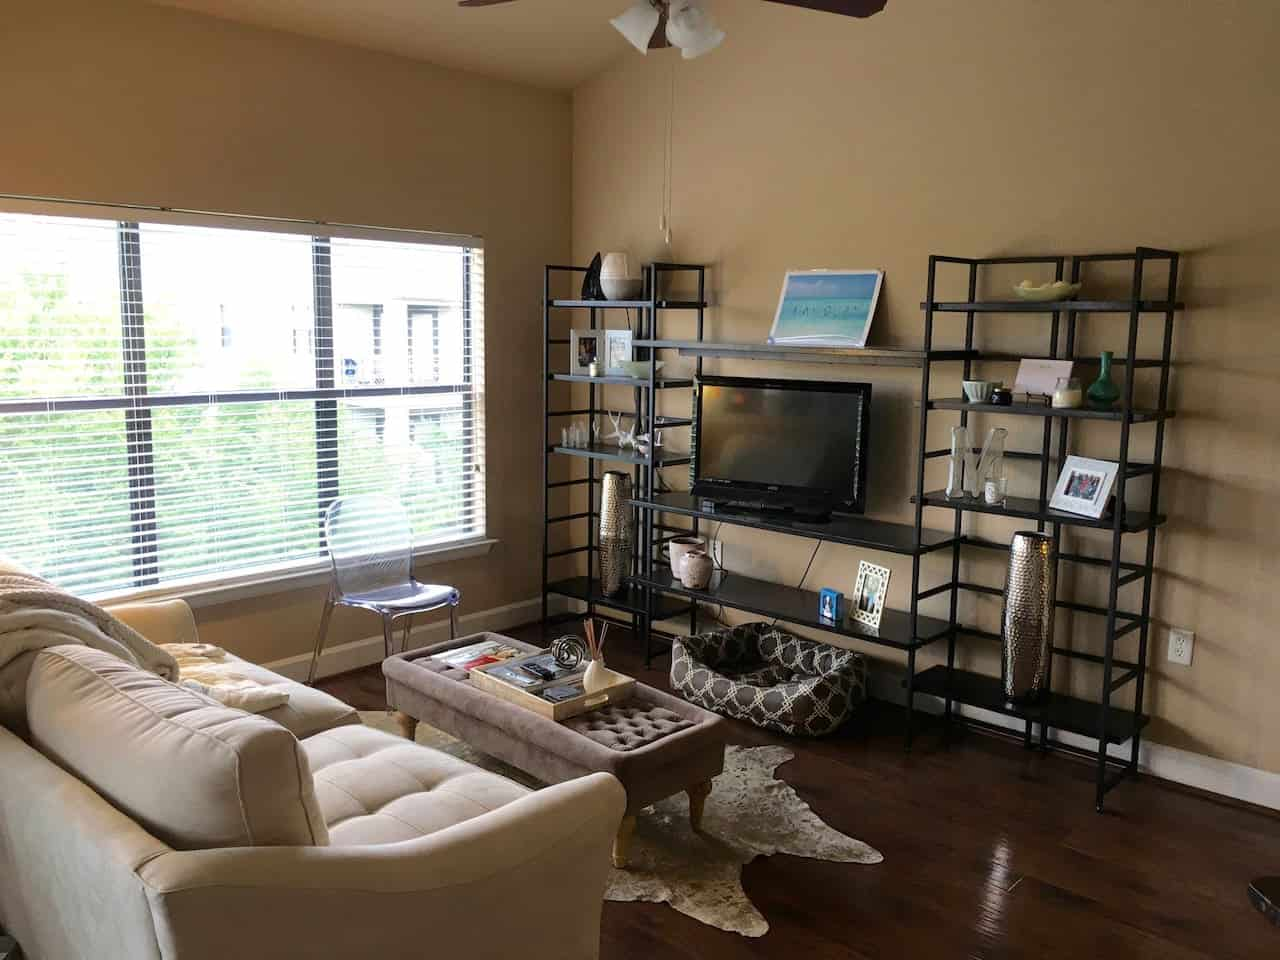 Image of Airbnb rental in Dallas